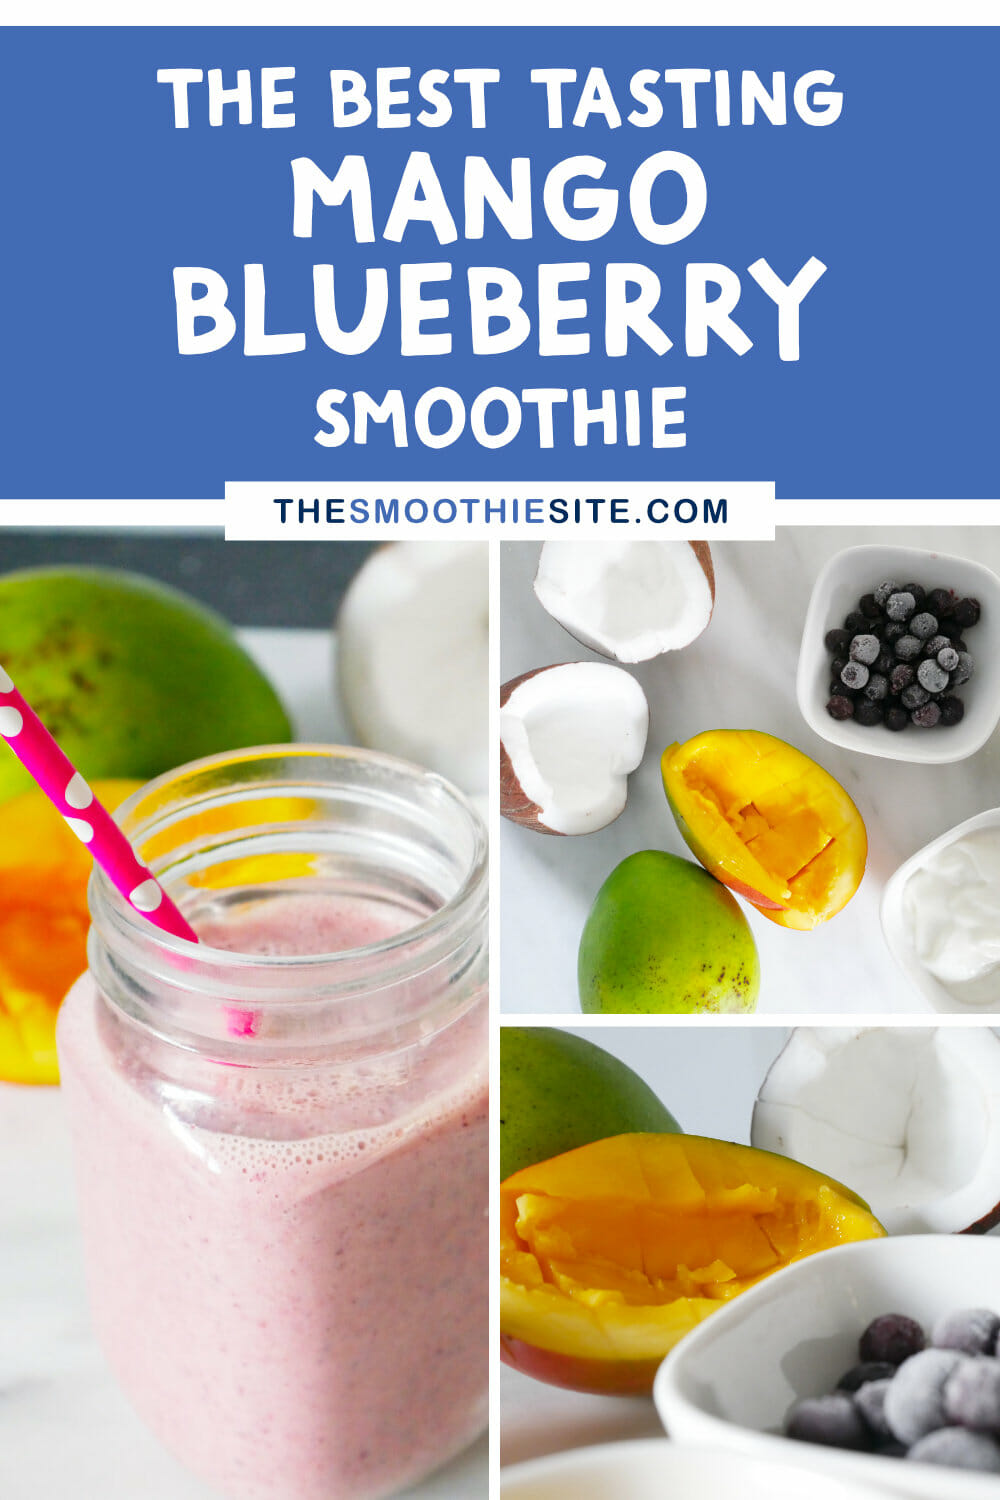 The best tasting mango blueberry smoothie recipe